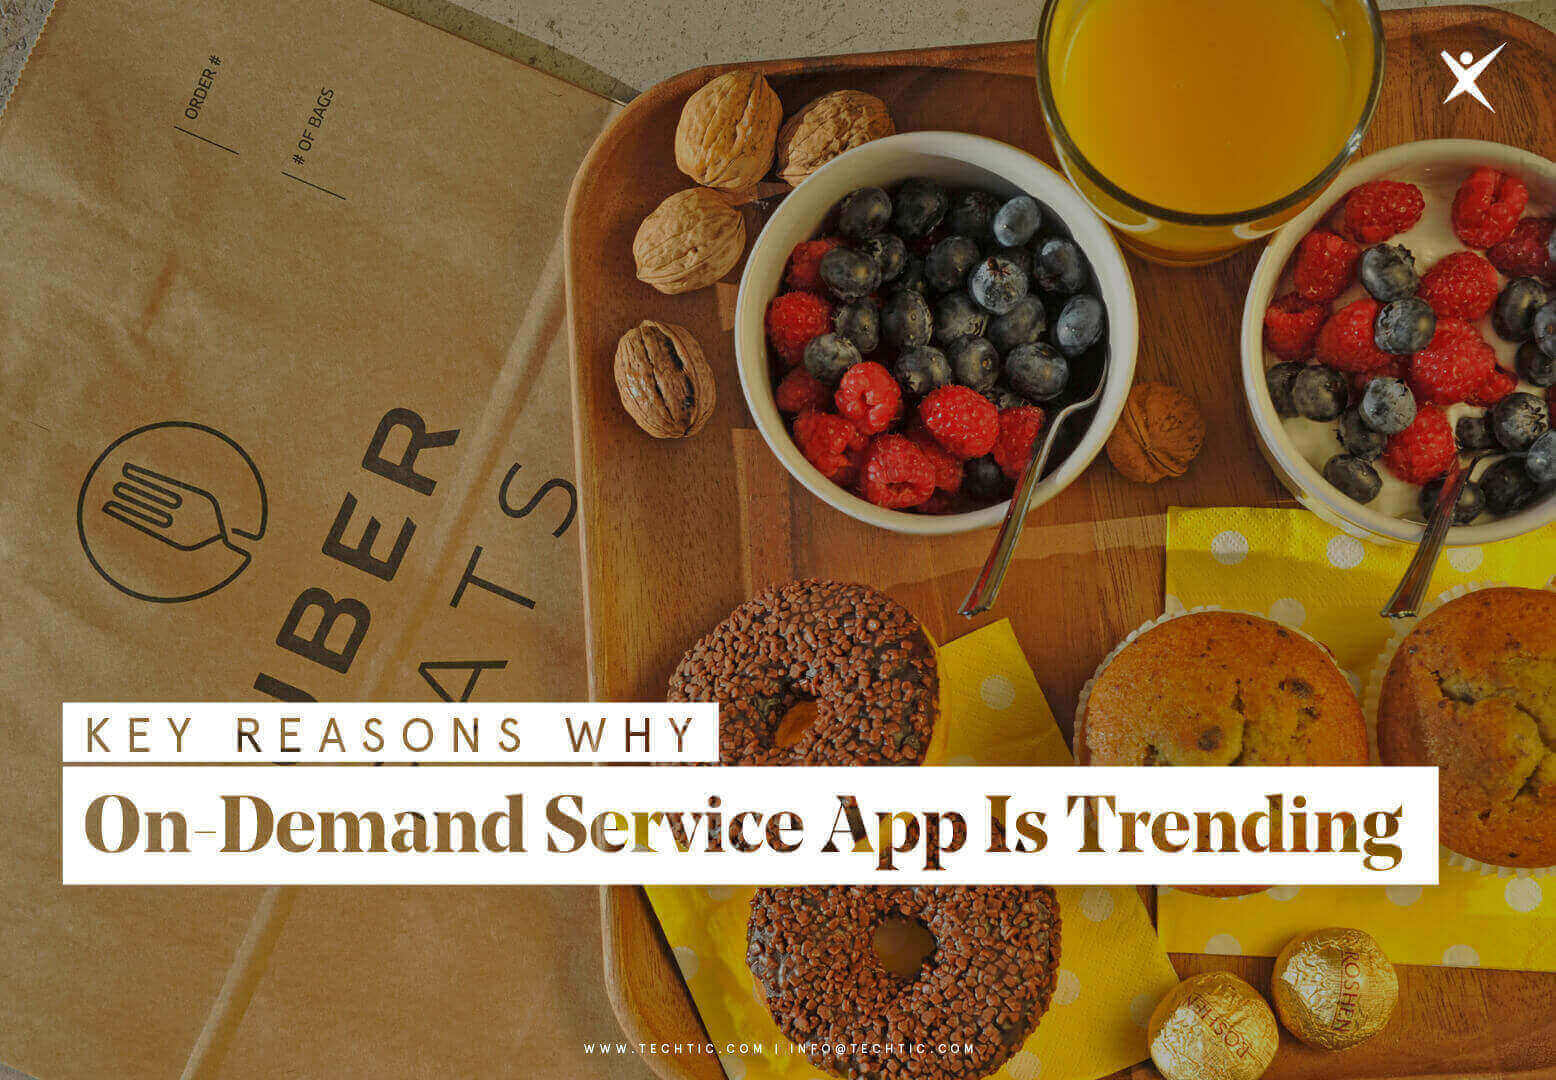 Key Reasons Why On-demand Service App Is Trending